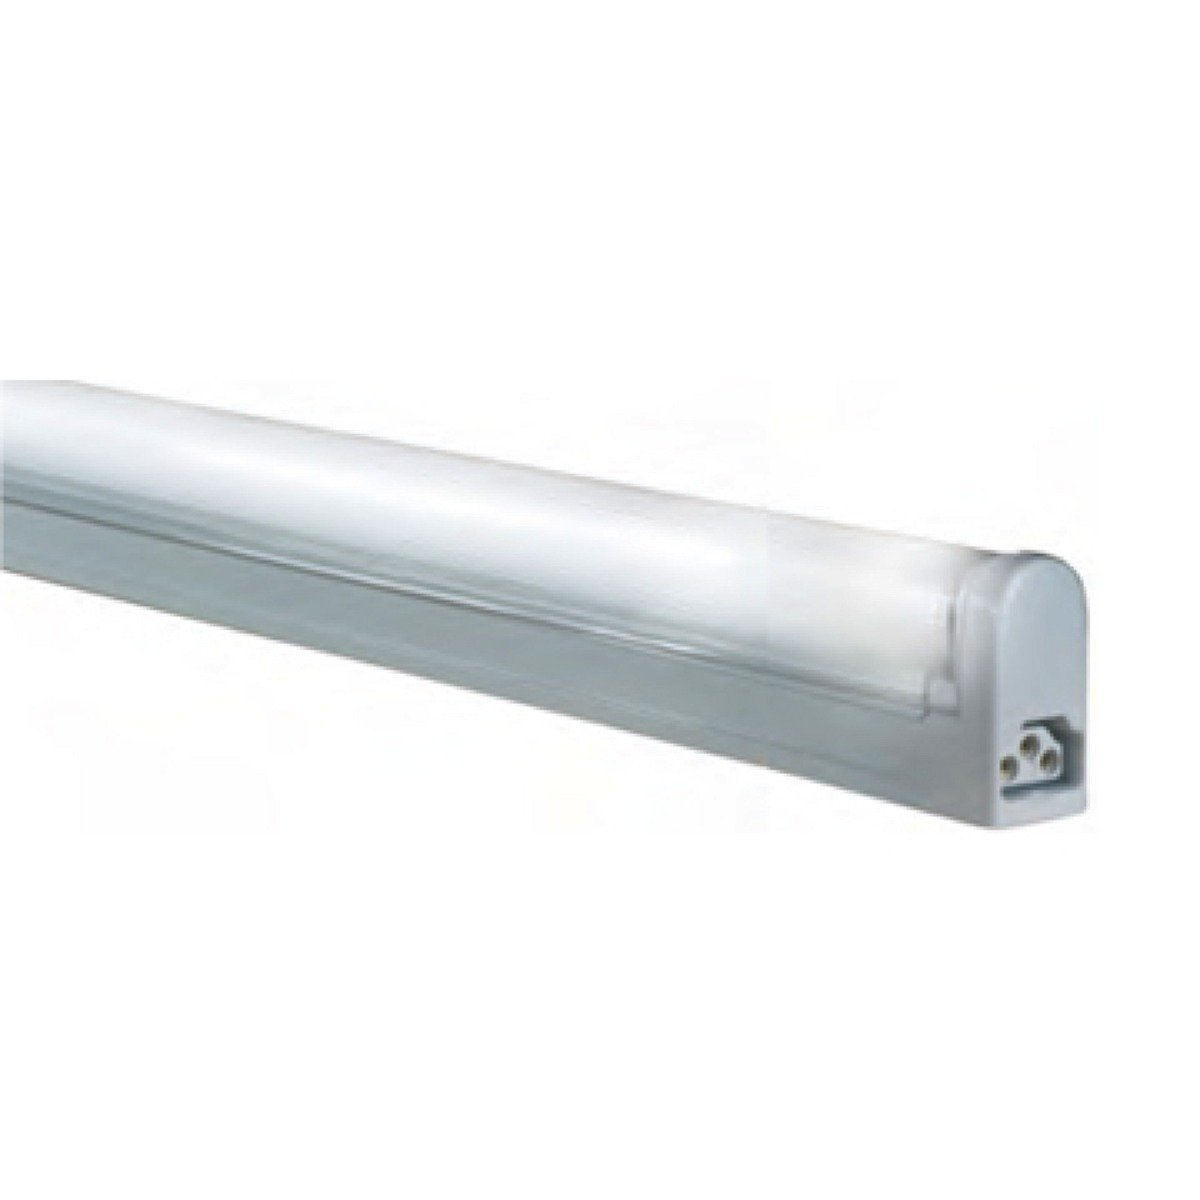 Watts: 12W Daylight Color F12T4-DL 17 in Type: T4 Fluorescent Tube